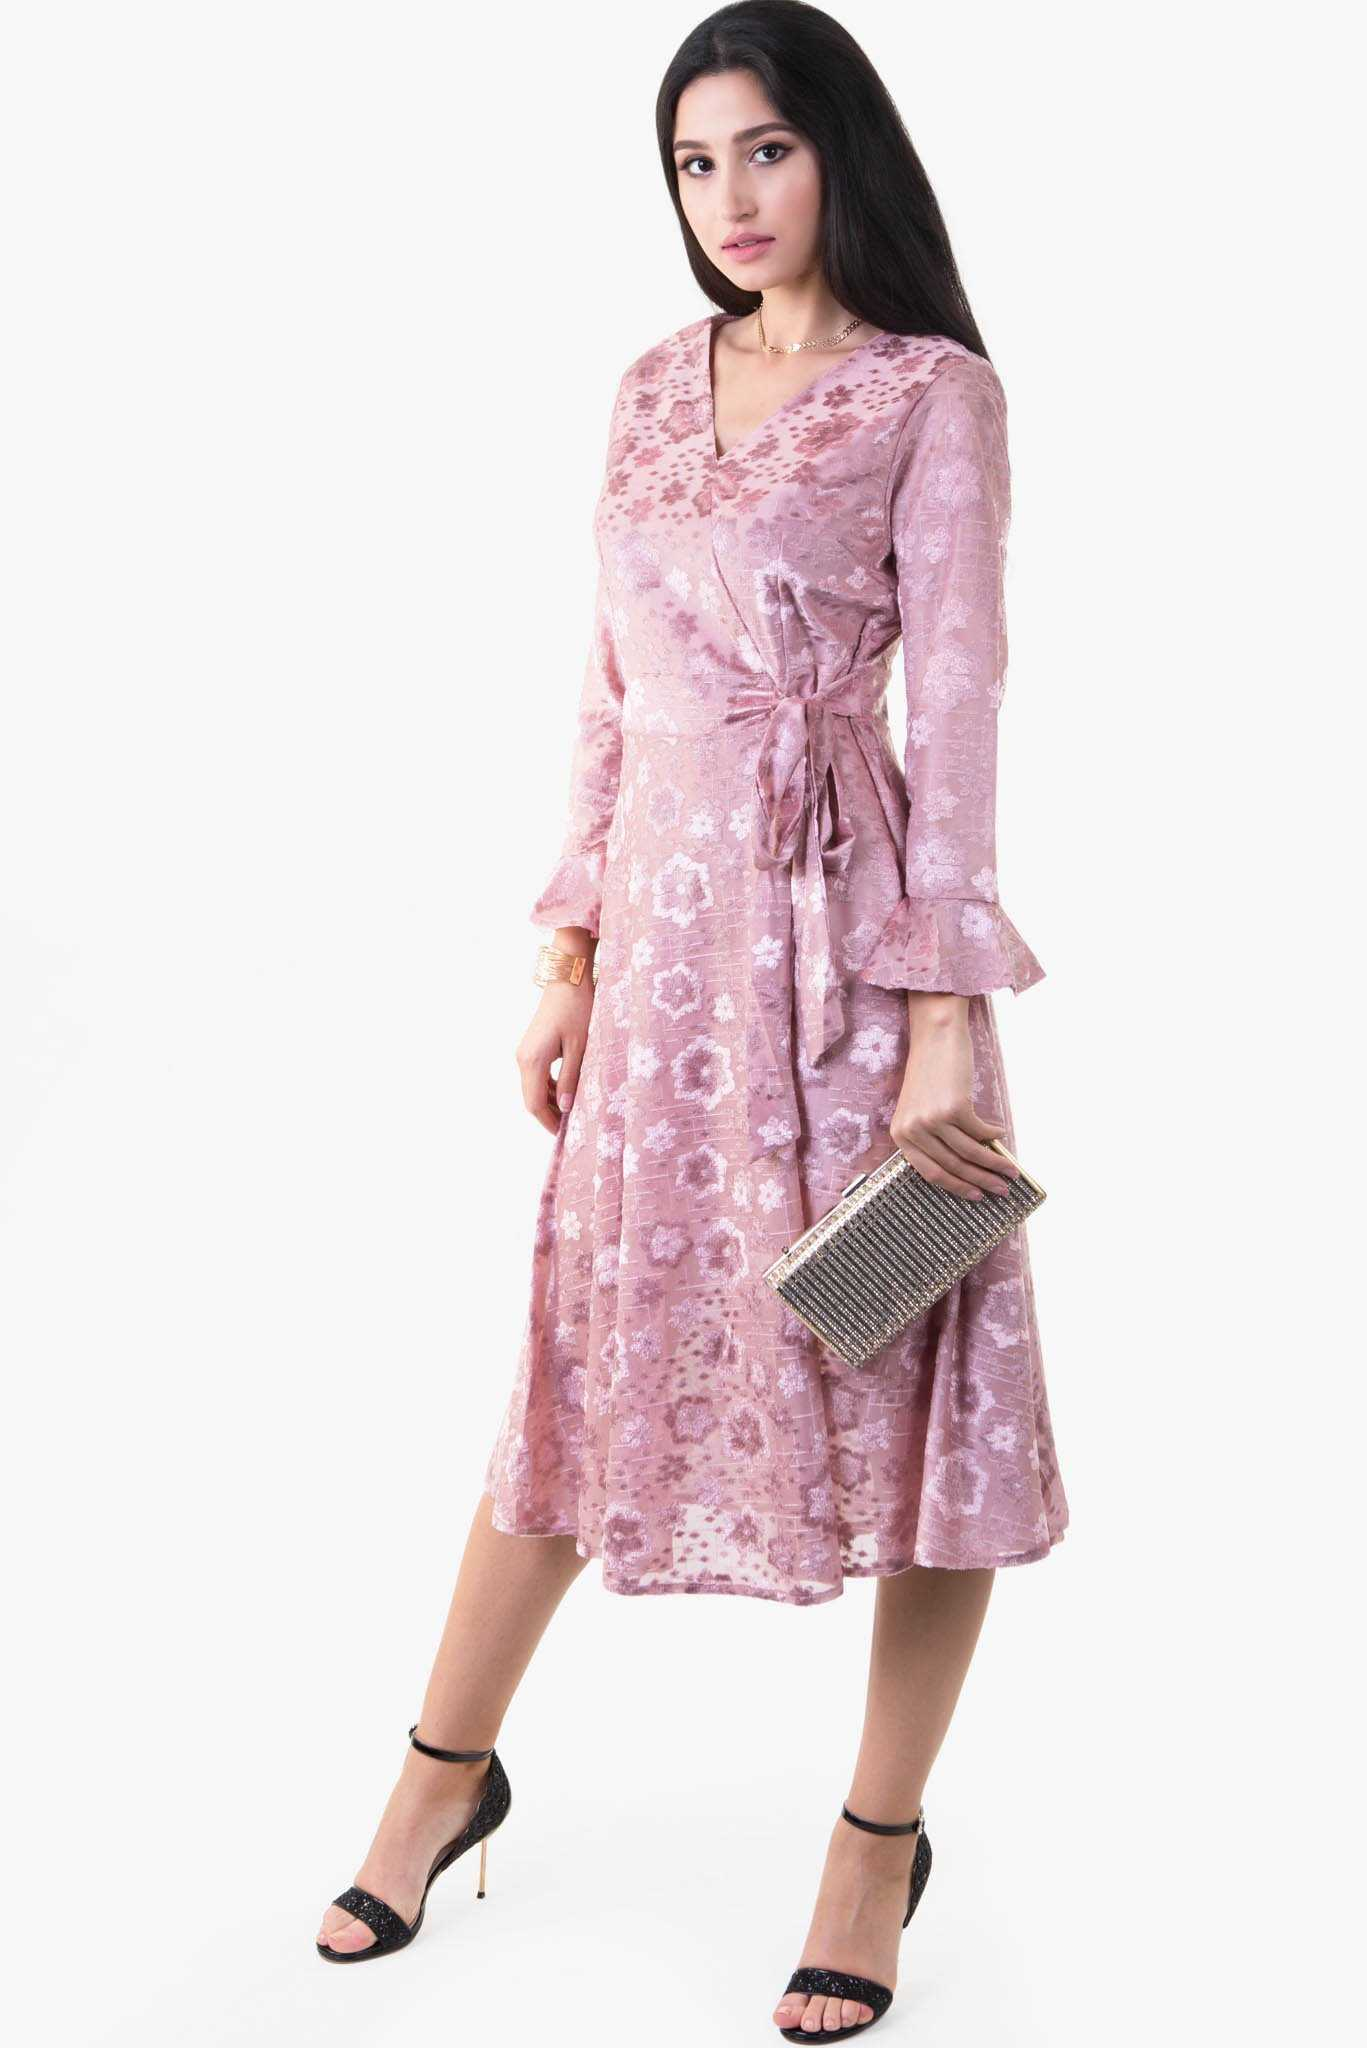 Velvet Floral Dress - Pink | Raw Orange